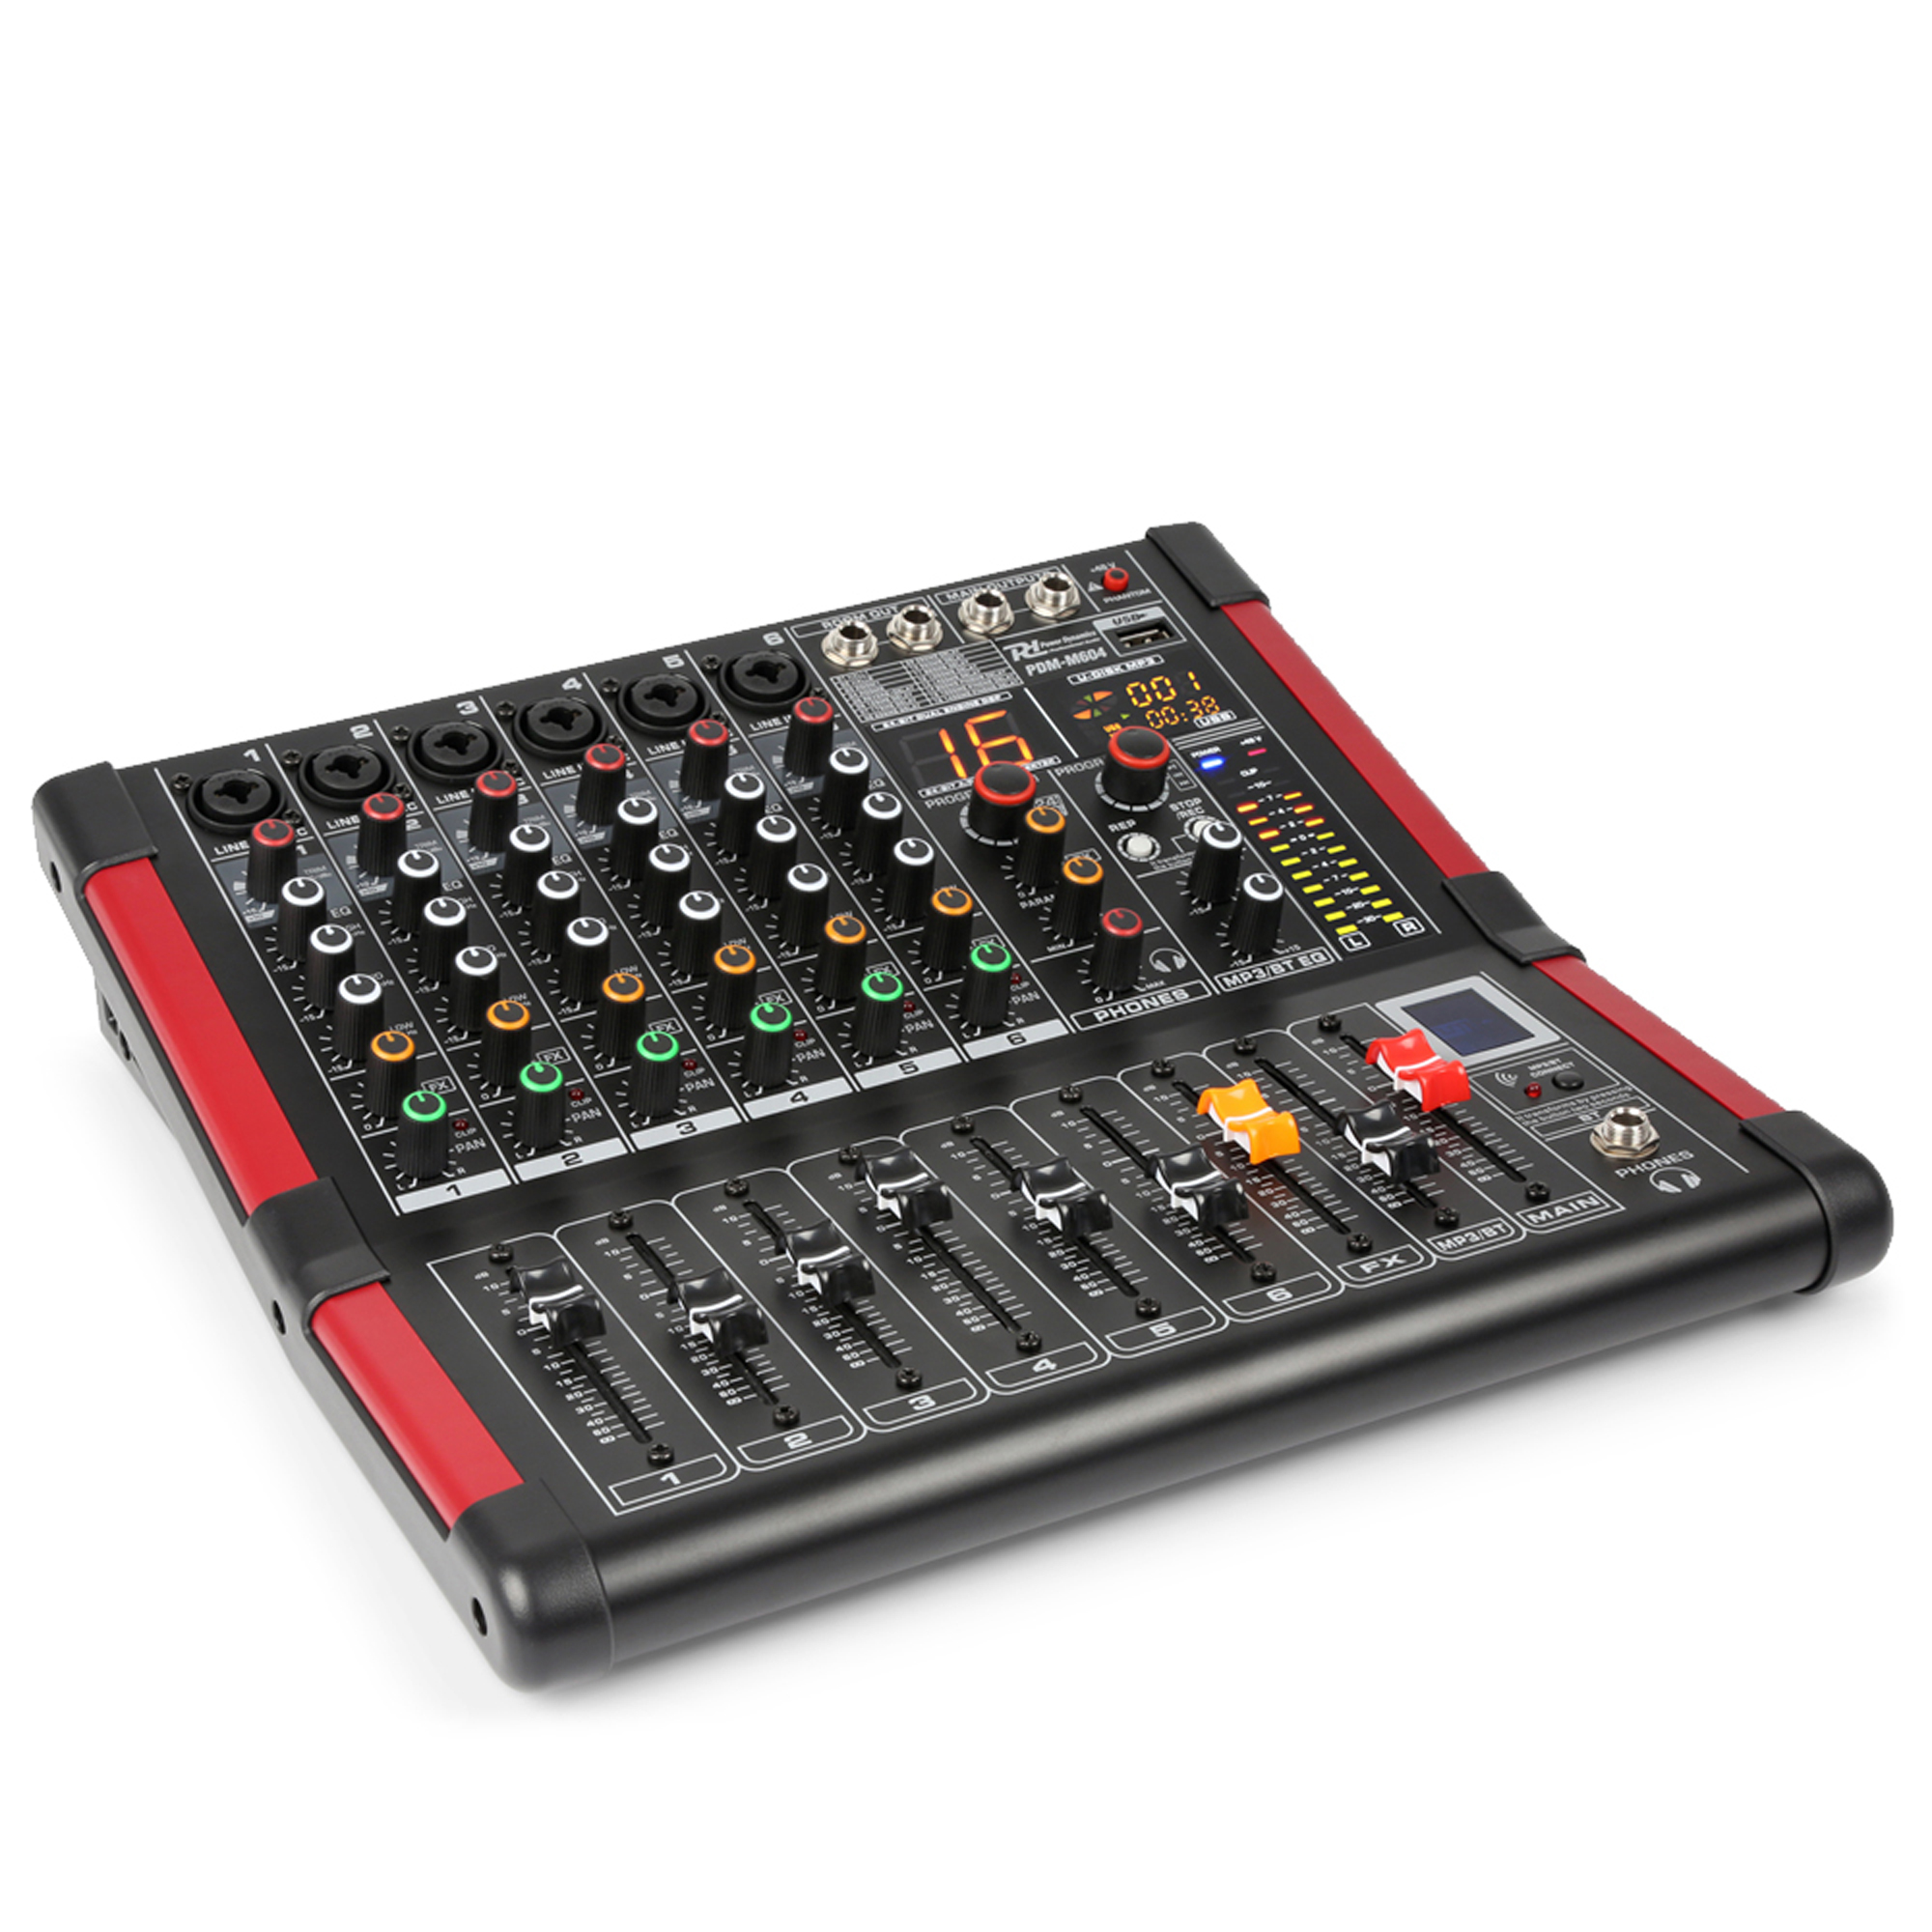 PD PDM-M604 6-Channel Music Mixer